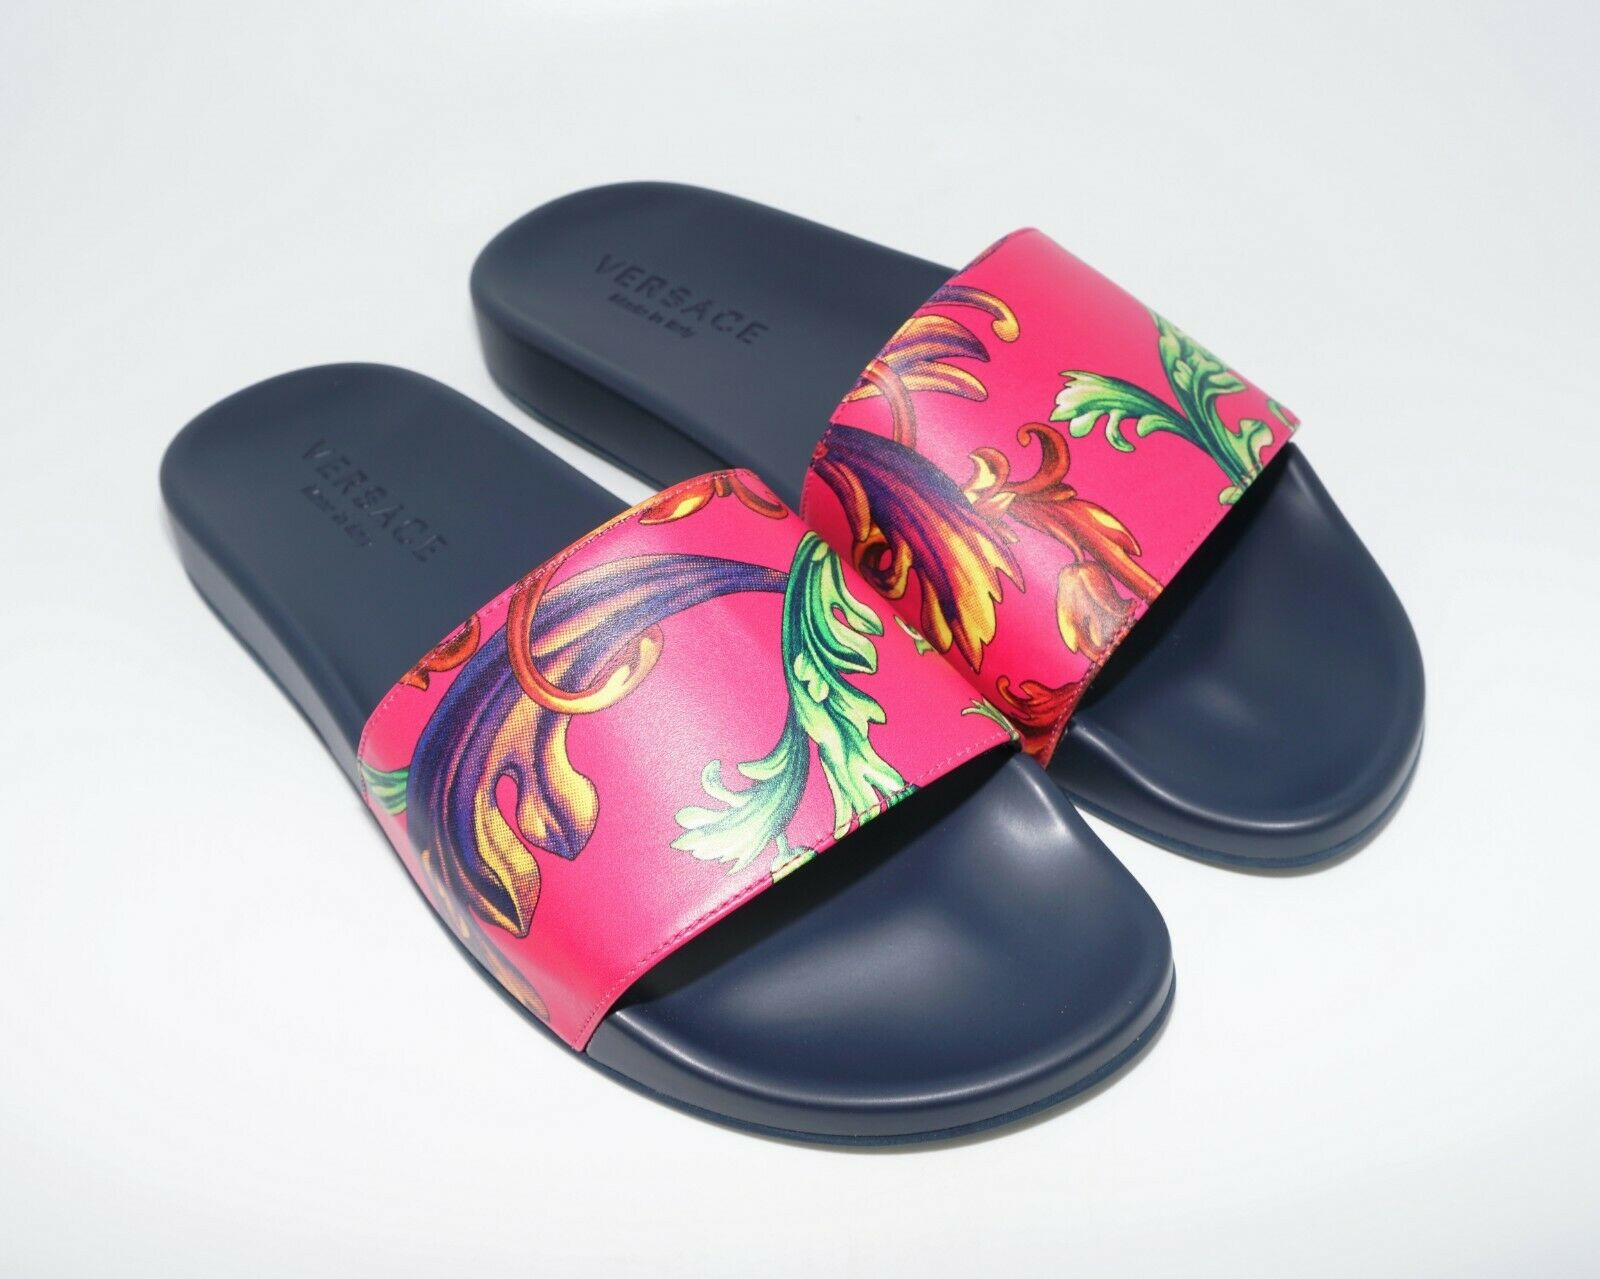 Versace Men's Baroque Print Leather Shower Slide Sandals, Navy Multi, MSRP  495